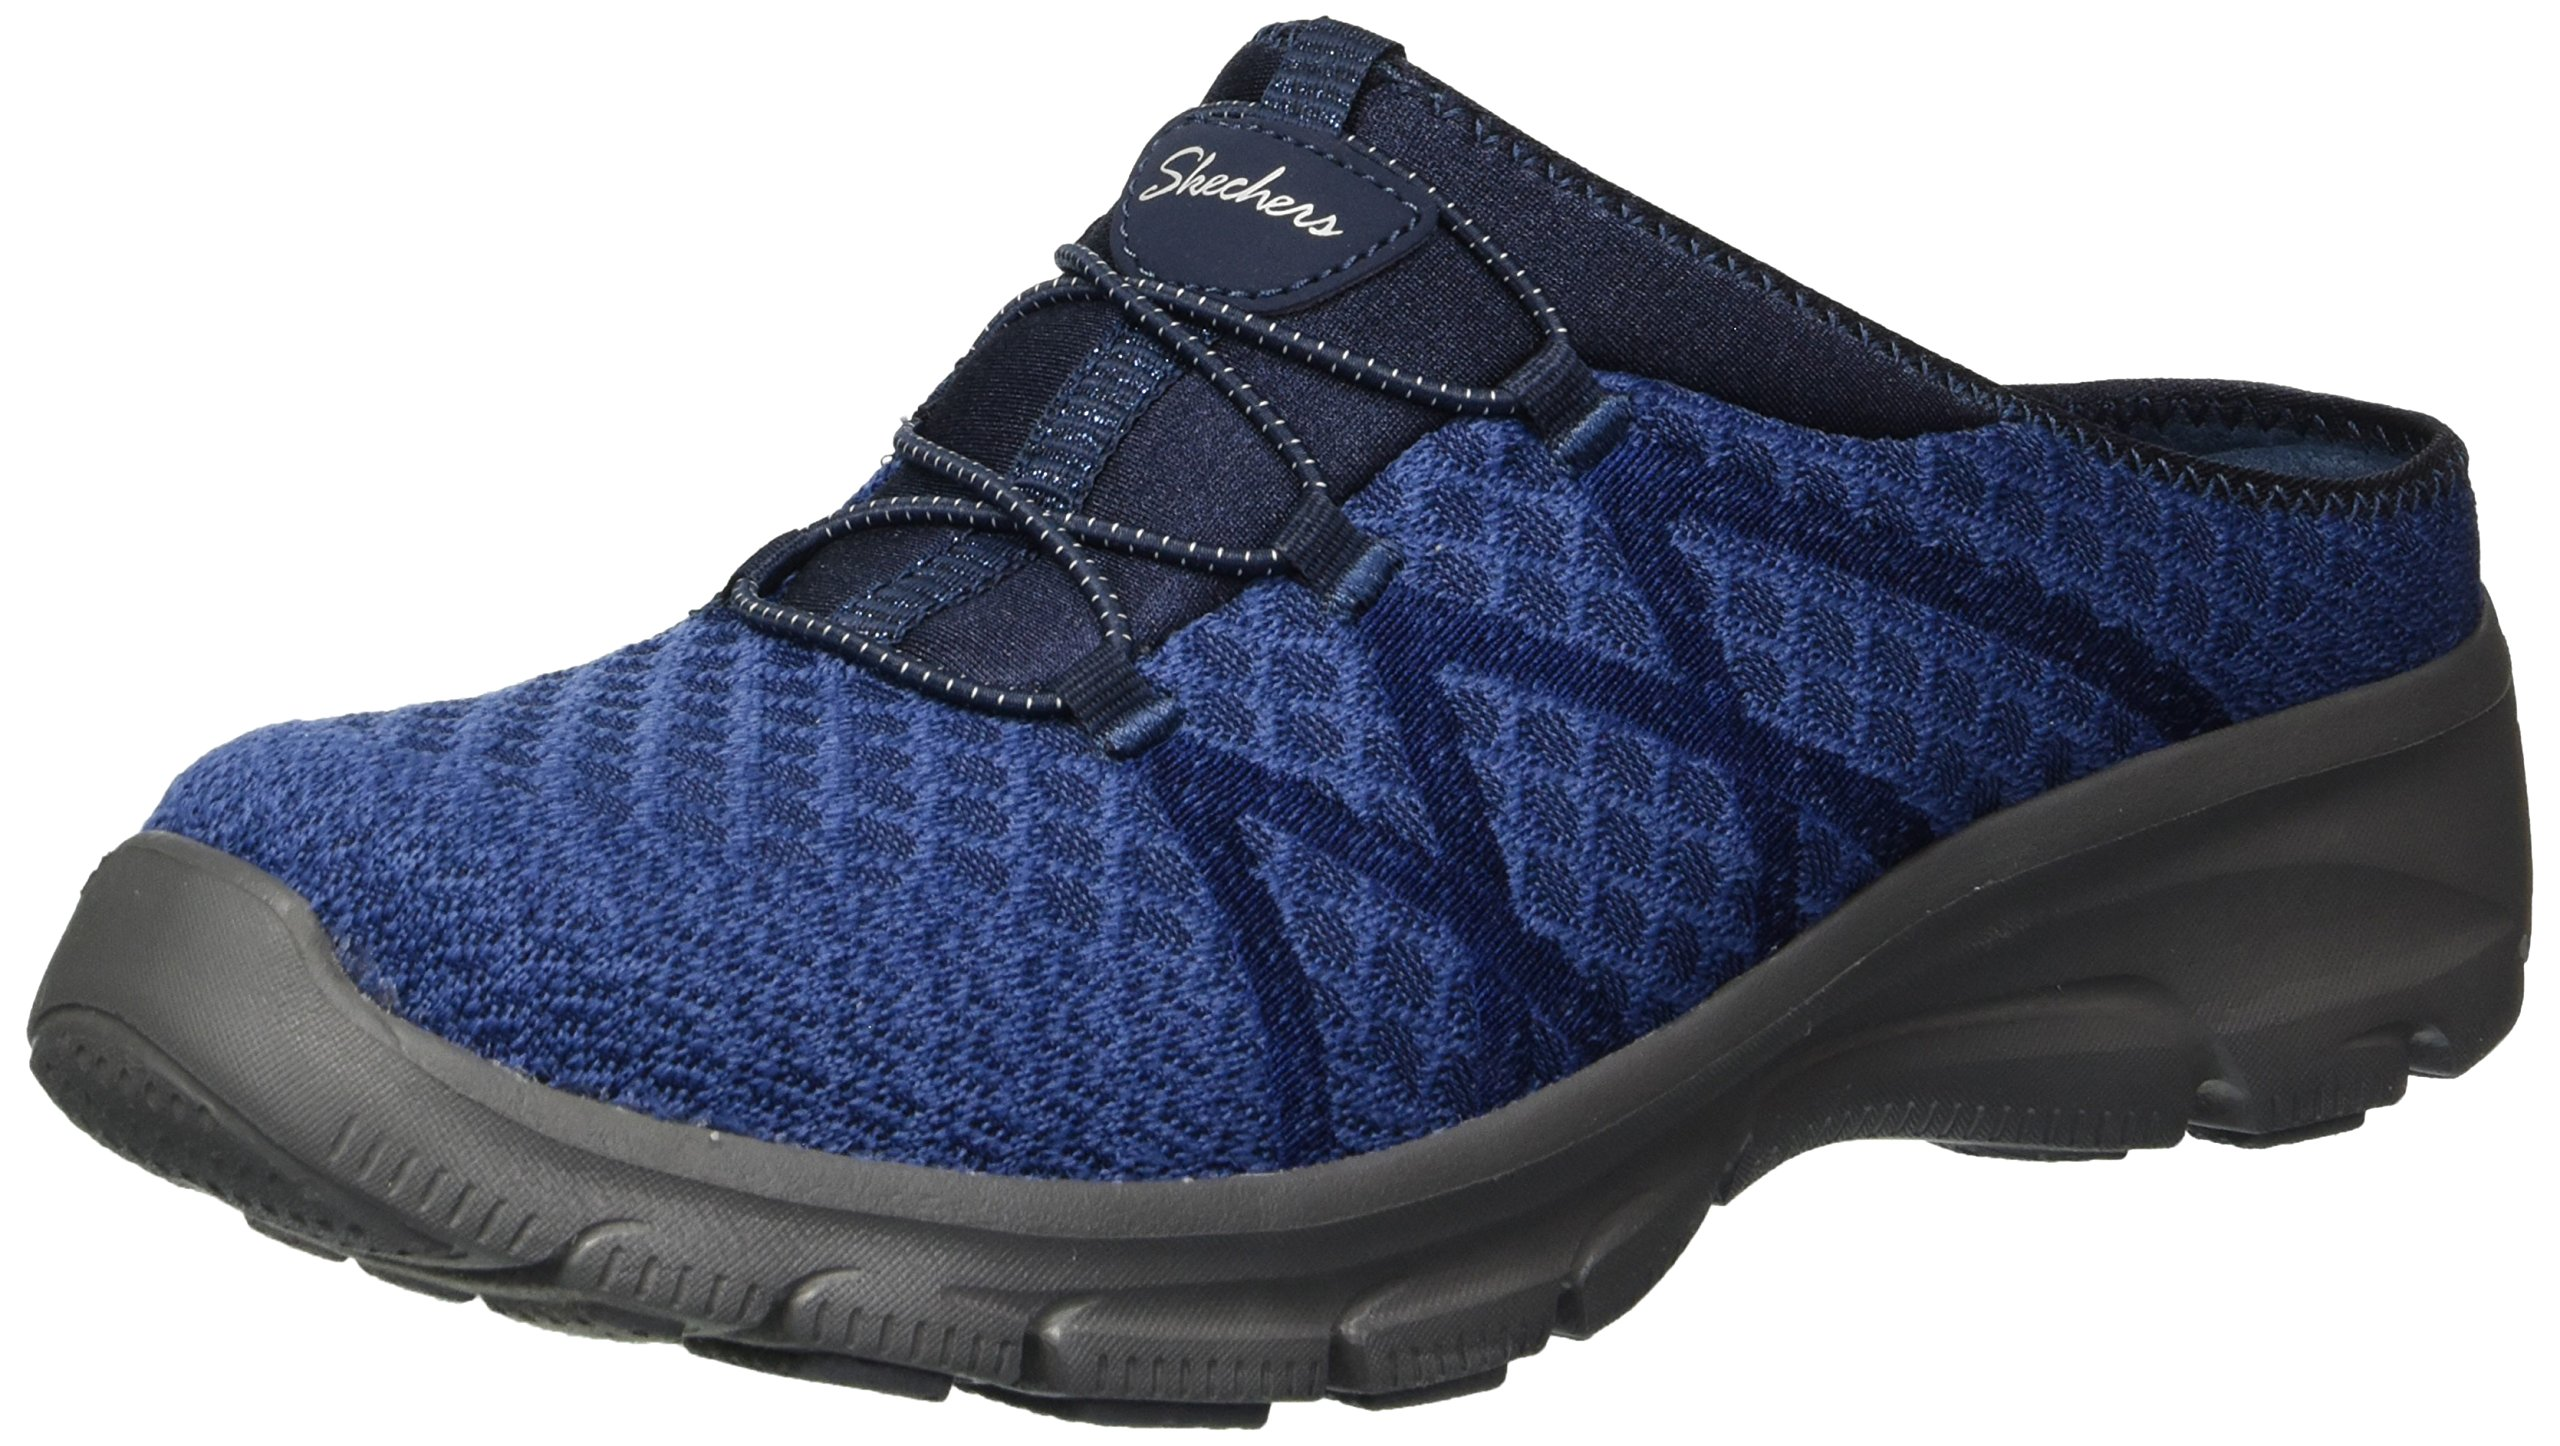 Skechers Women's Knitty Gritty-Knit Bungee Version of The Easy Going-Repute Mule, Navy, 8 M US